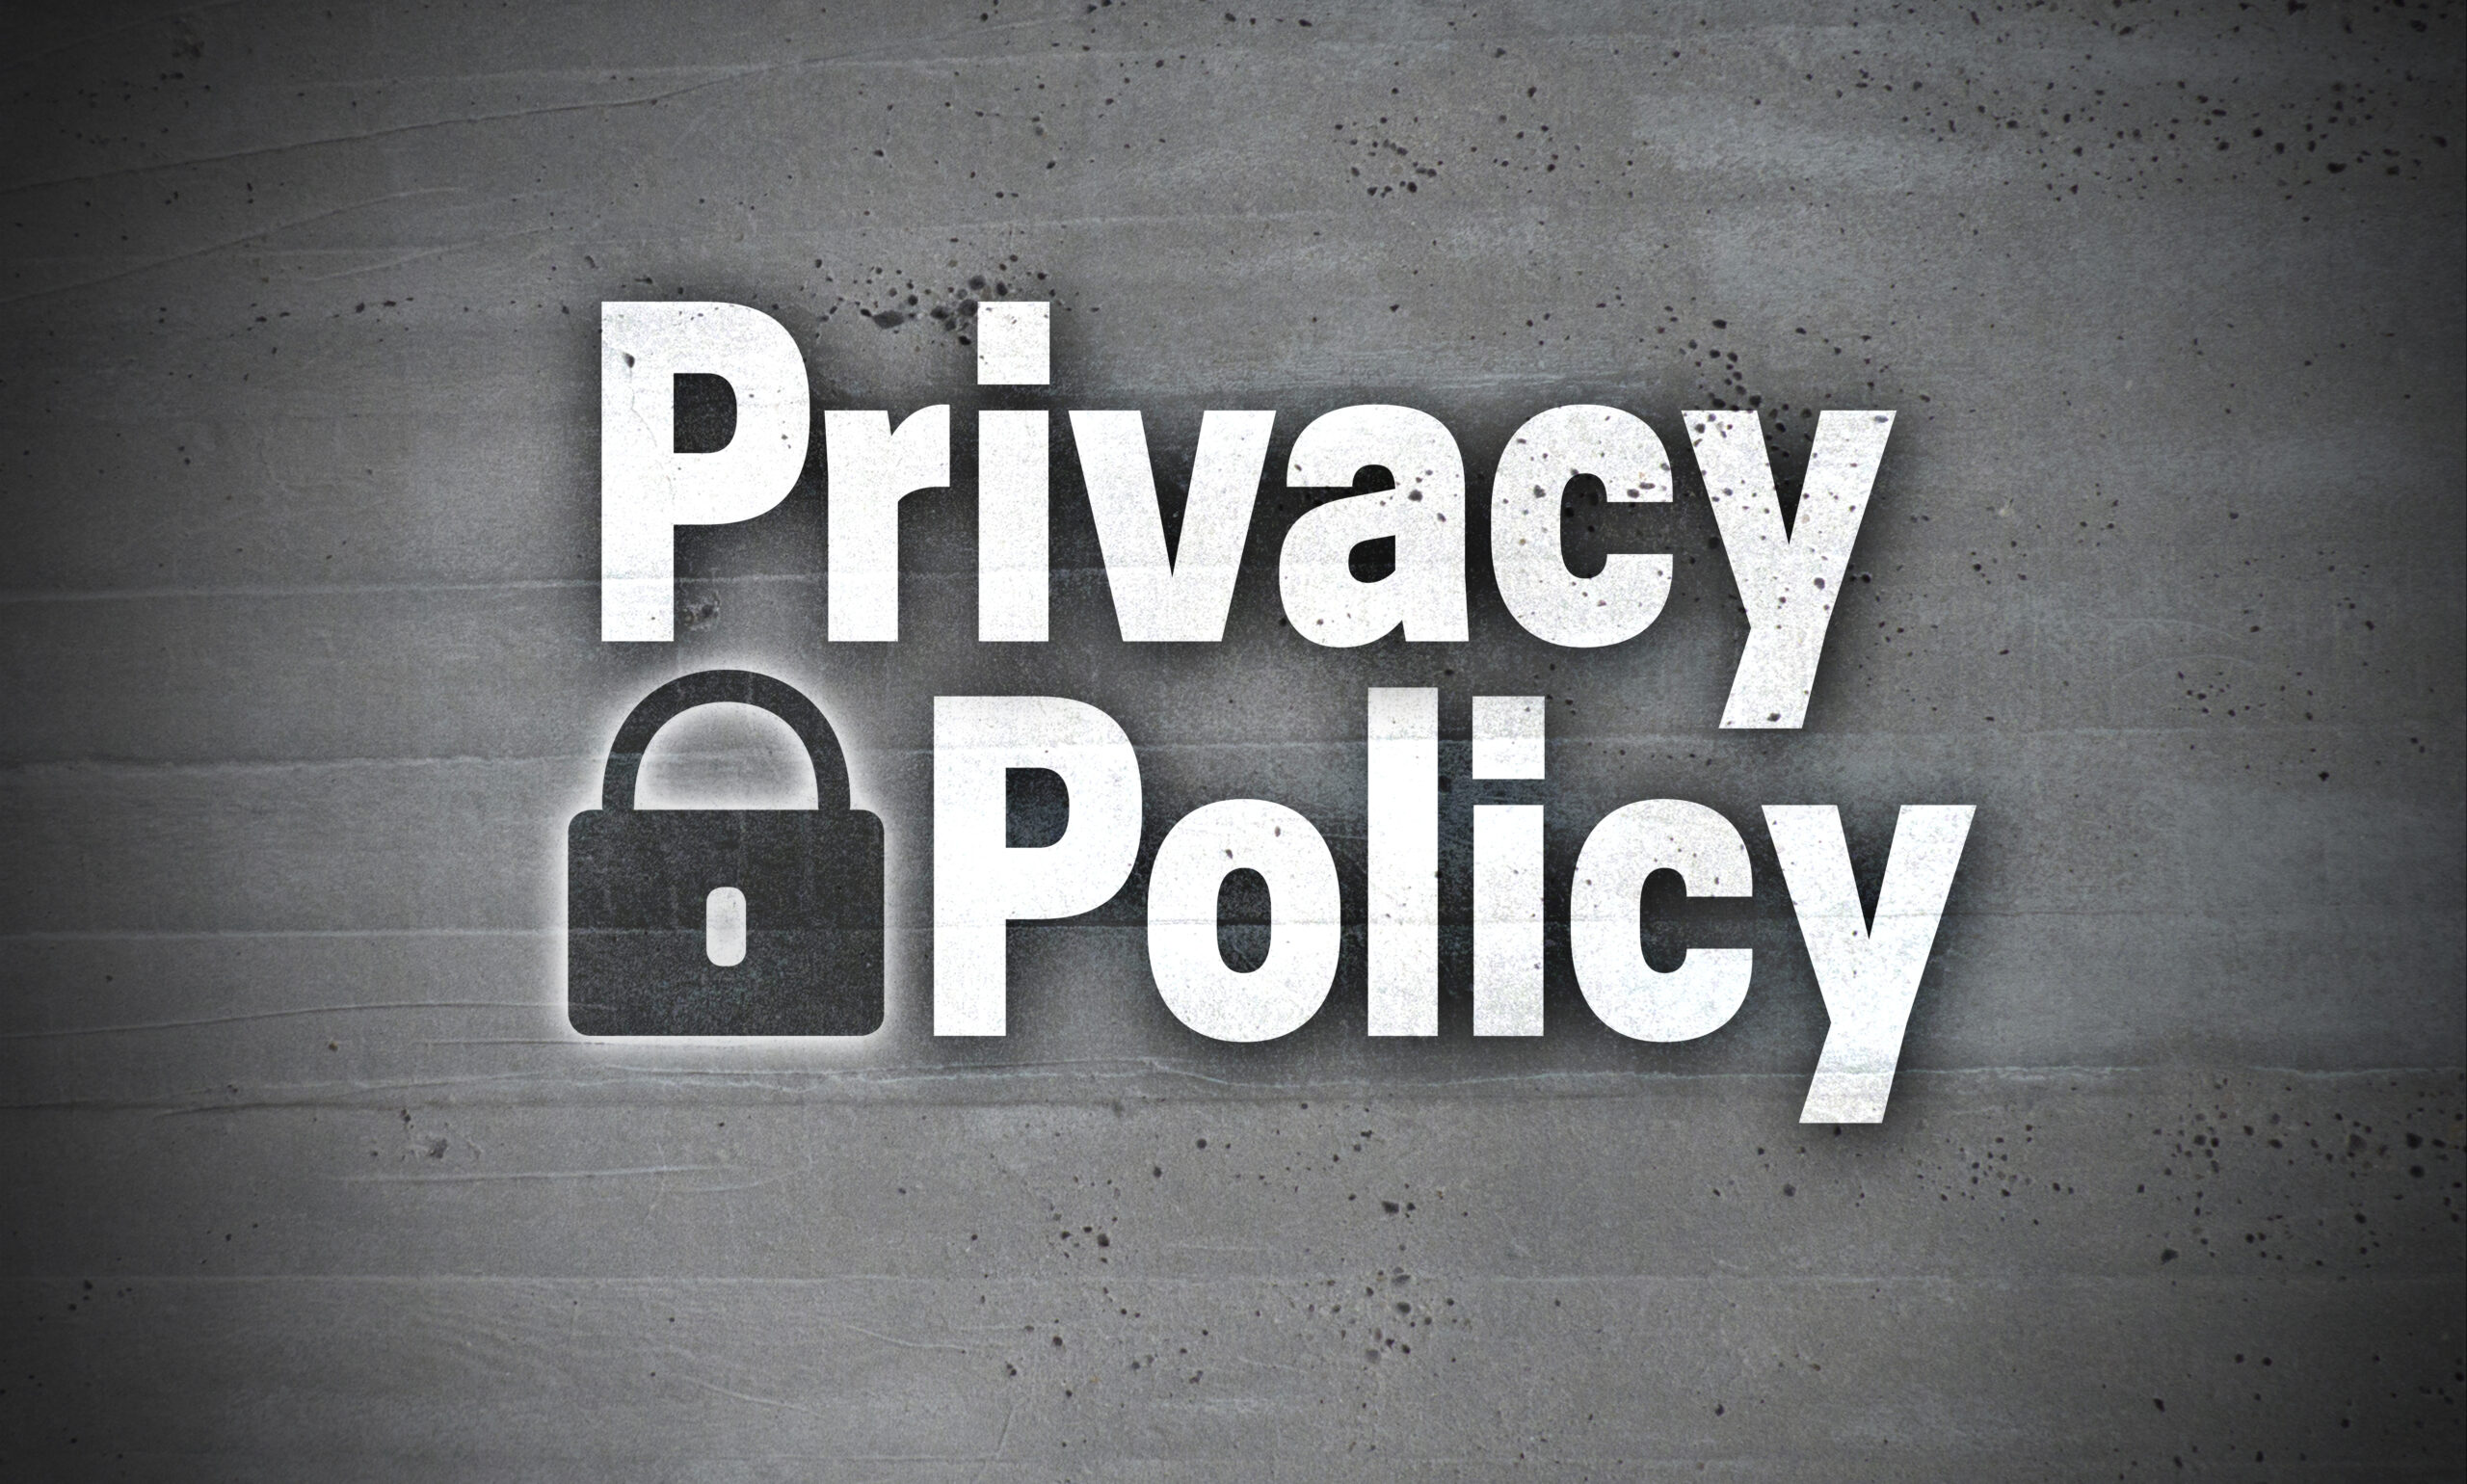 Privacy Policy with Lock Image